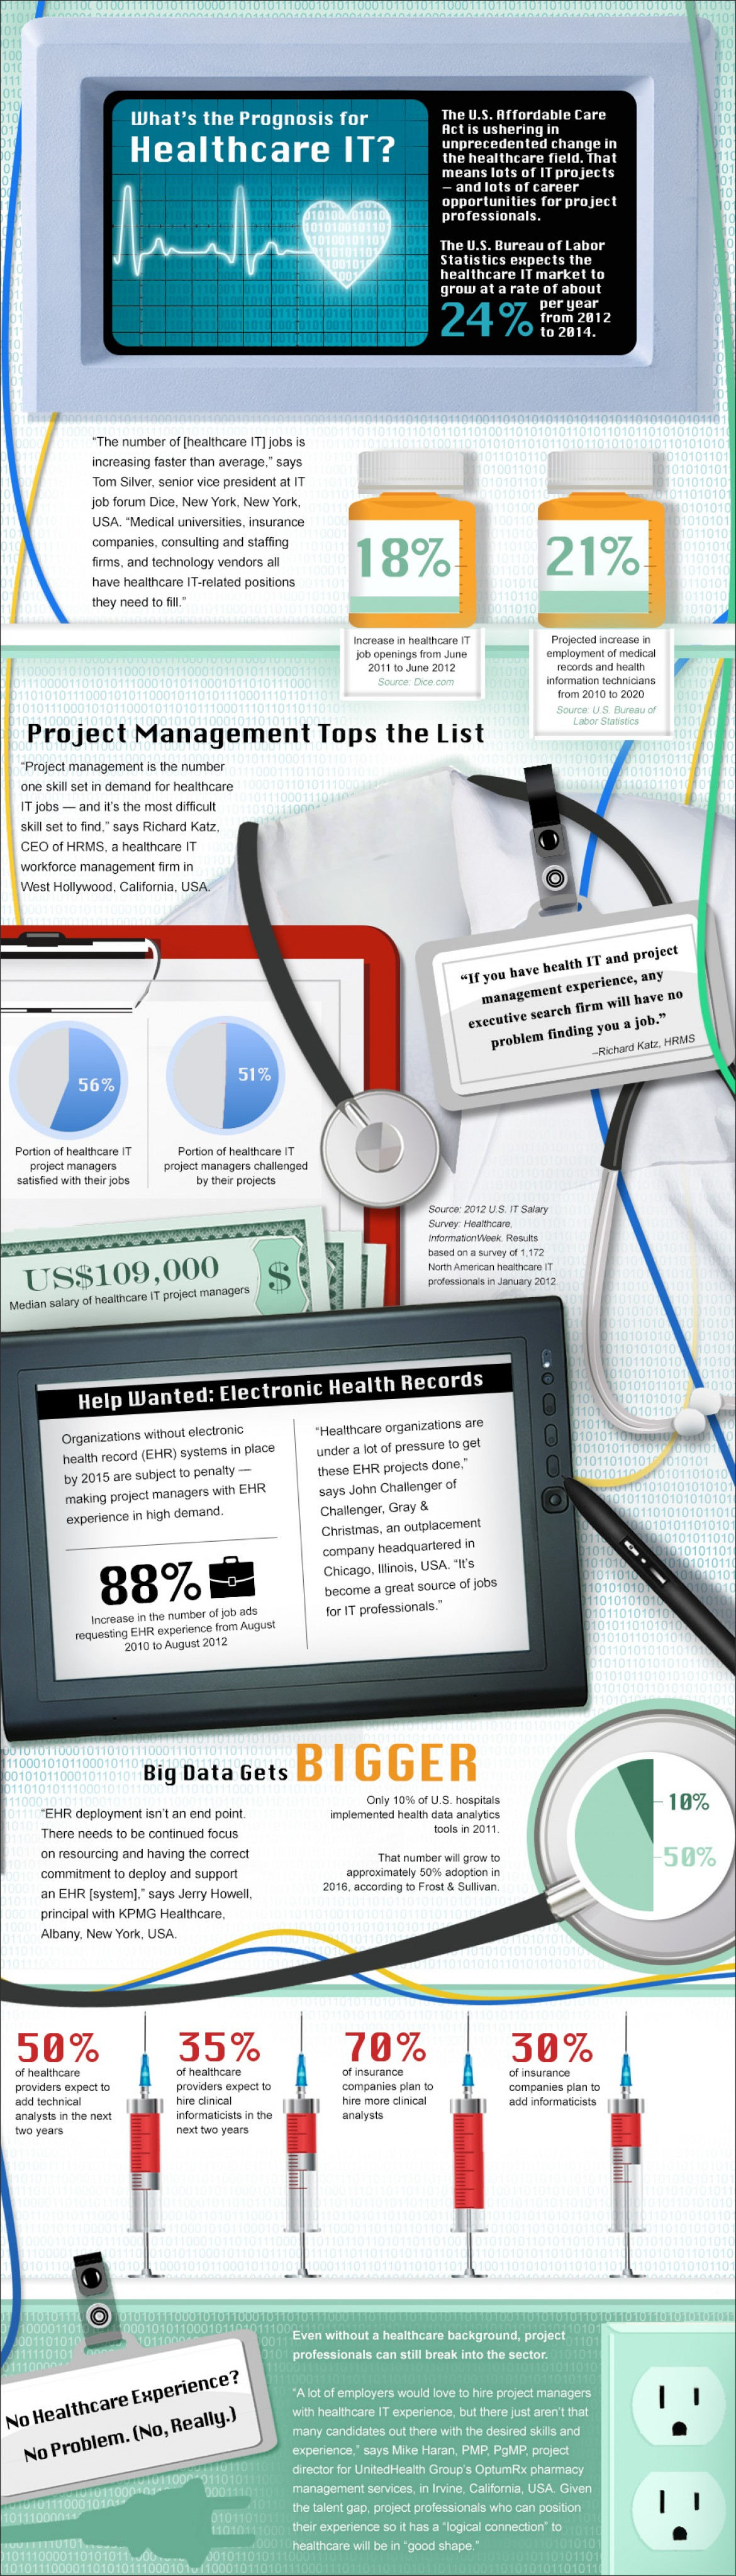 Top 3 Reasons IT Professionals should learn HealthCare IT